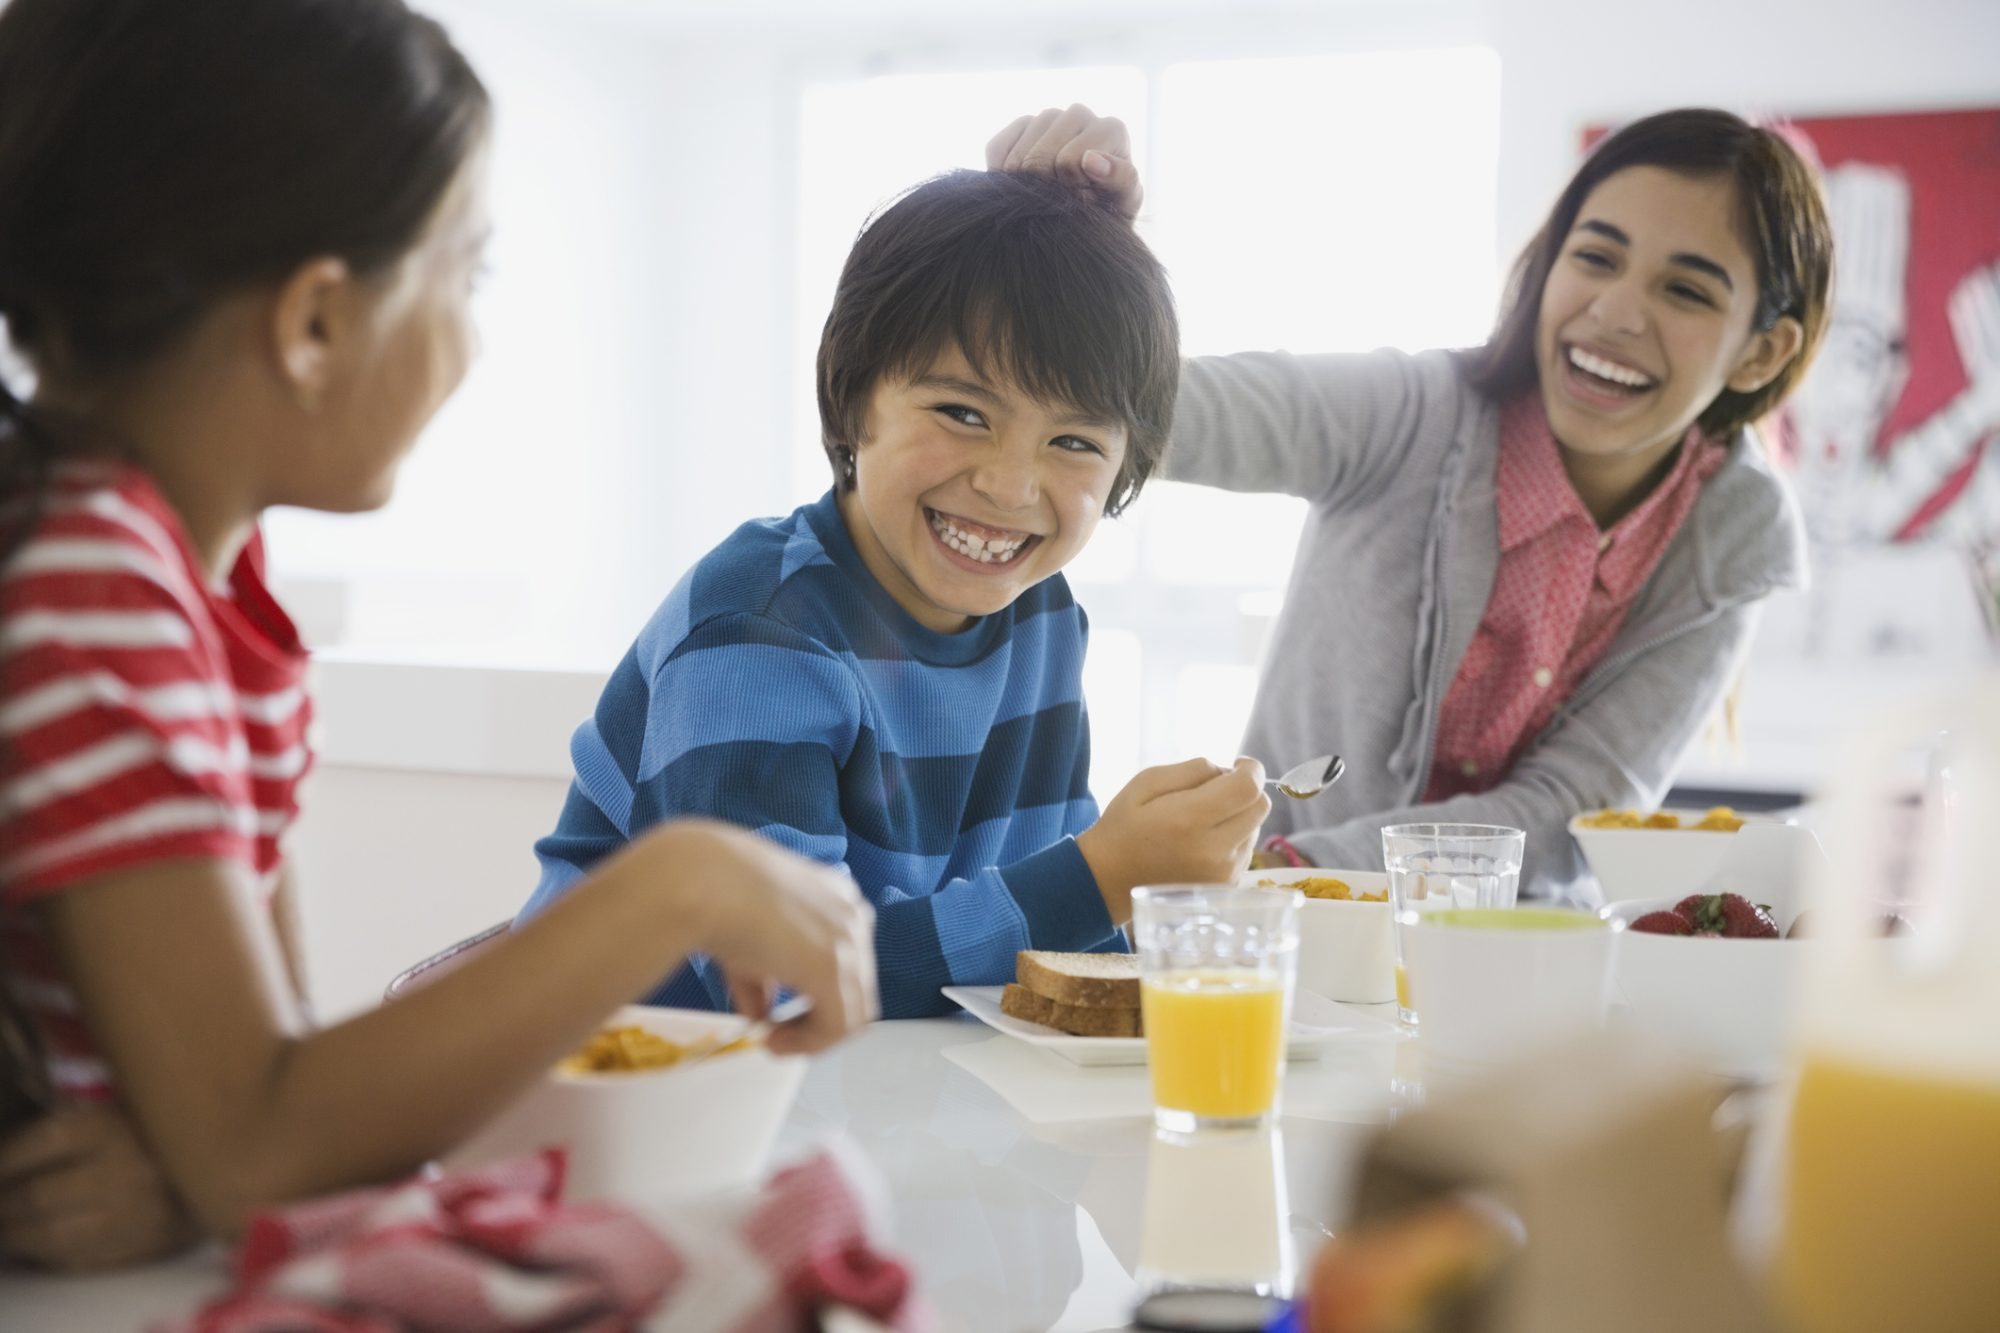 EC: What You Should Eat for Breakfast to Make You Happy